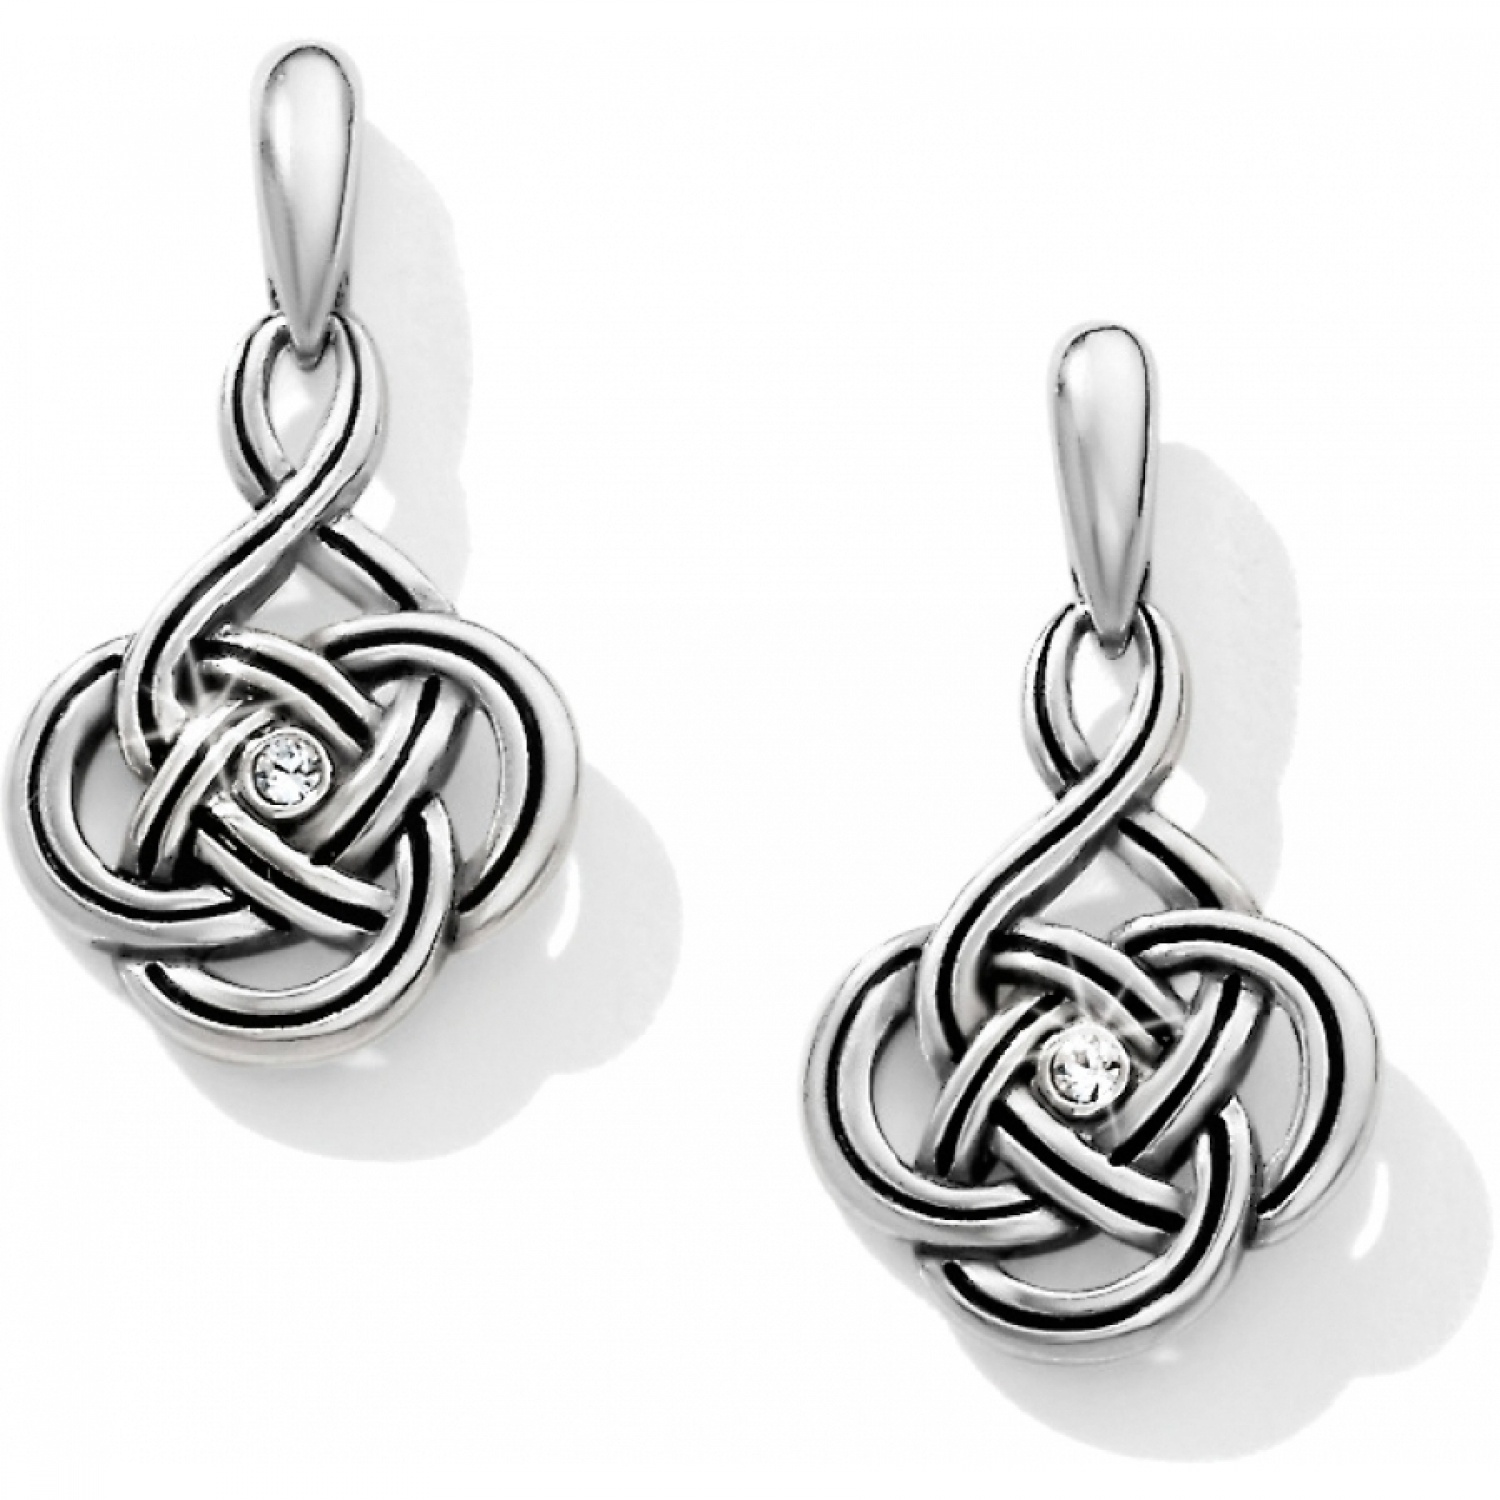 Silver Knot Jewelry | Brighton Collectibles